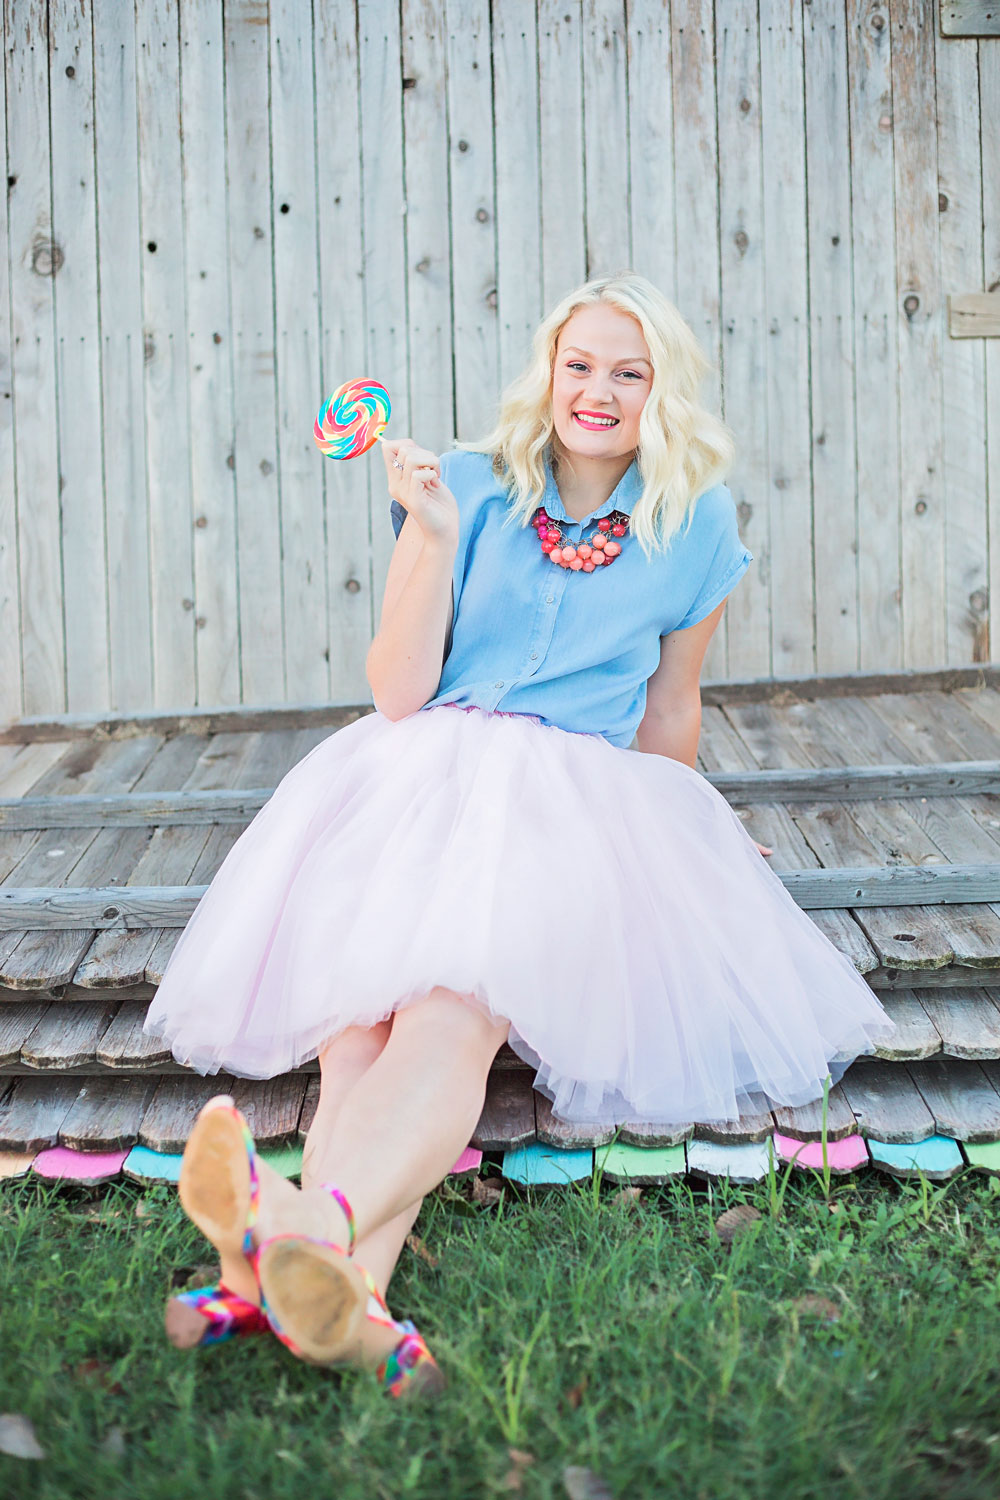 Senior girl wearing pink skirt, sitting on fence panels and eating lollipop by Amanda Lynn in Oklahoma City.